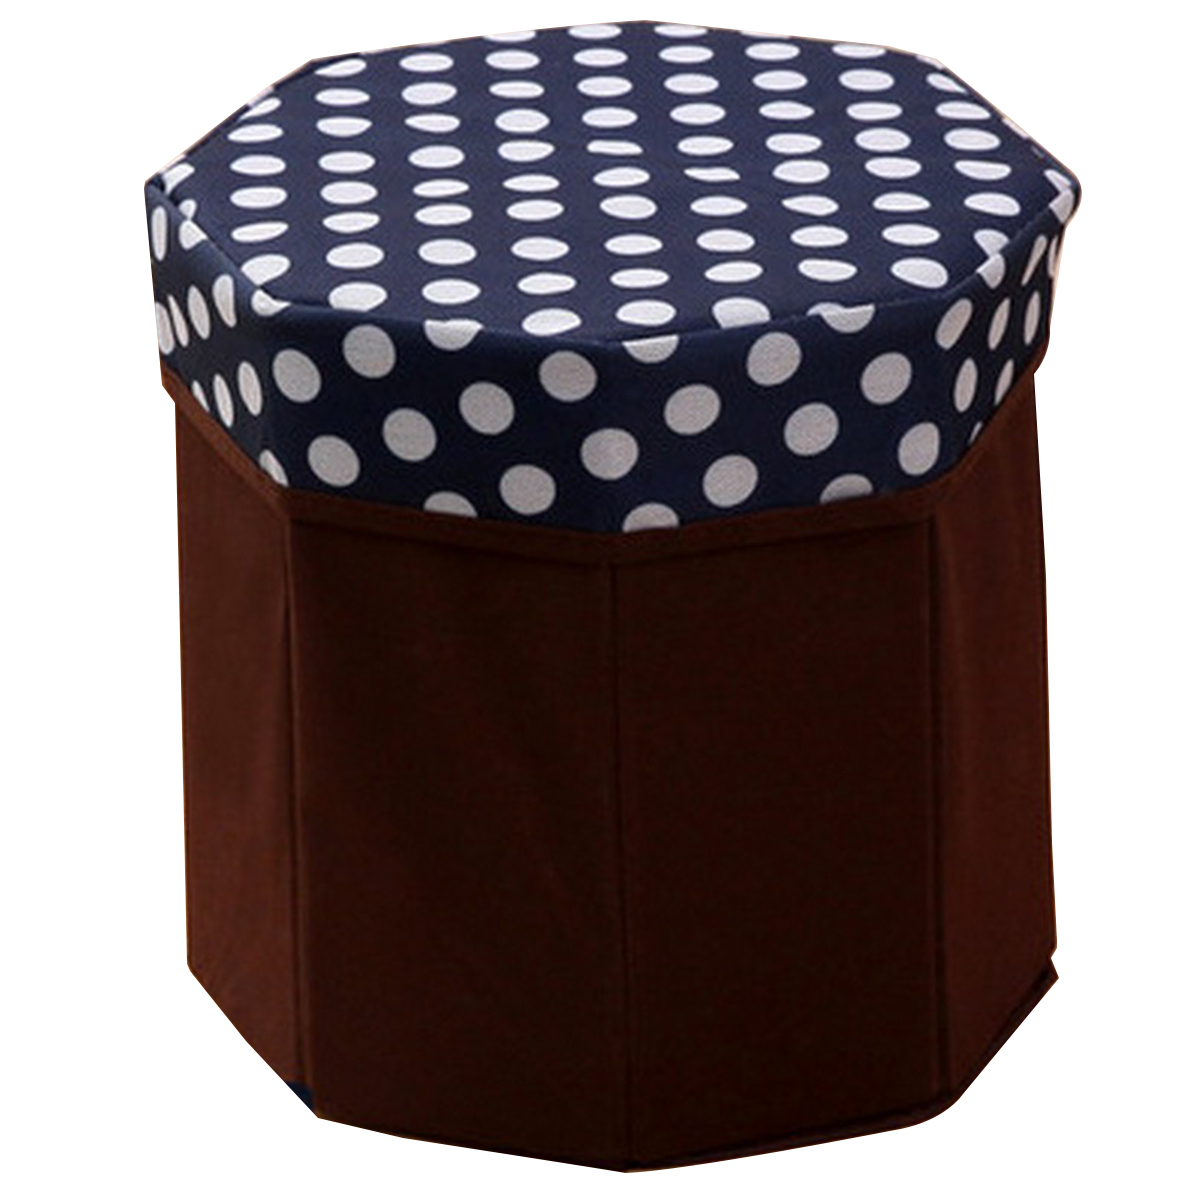 Creative Folding Storage Organizer Circular Multi-function Storage Box For Clothes Books Living Goods (Dot Navy Blue)